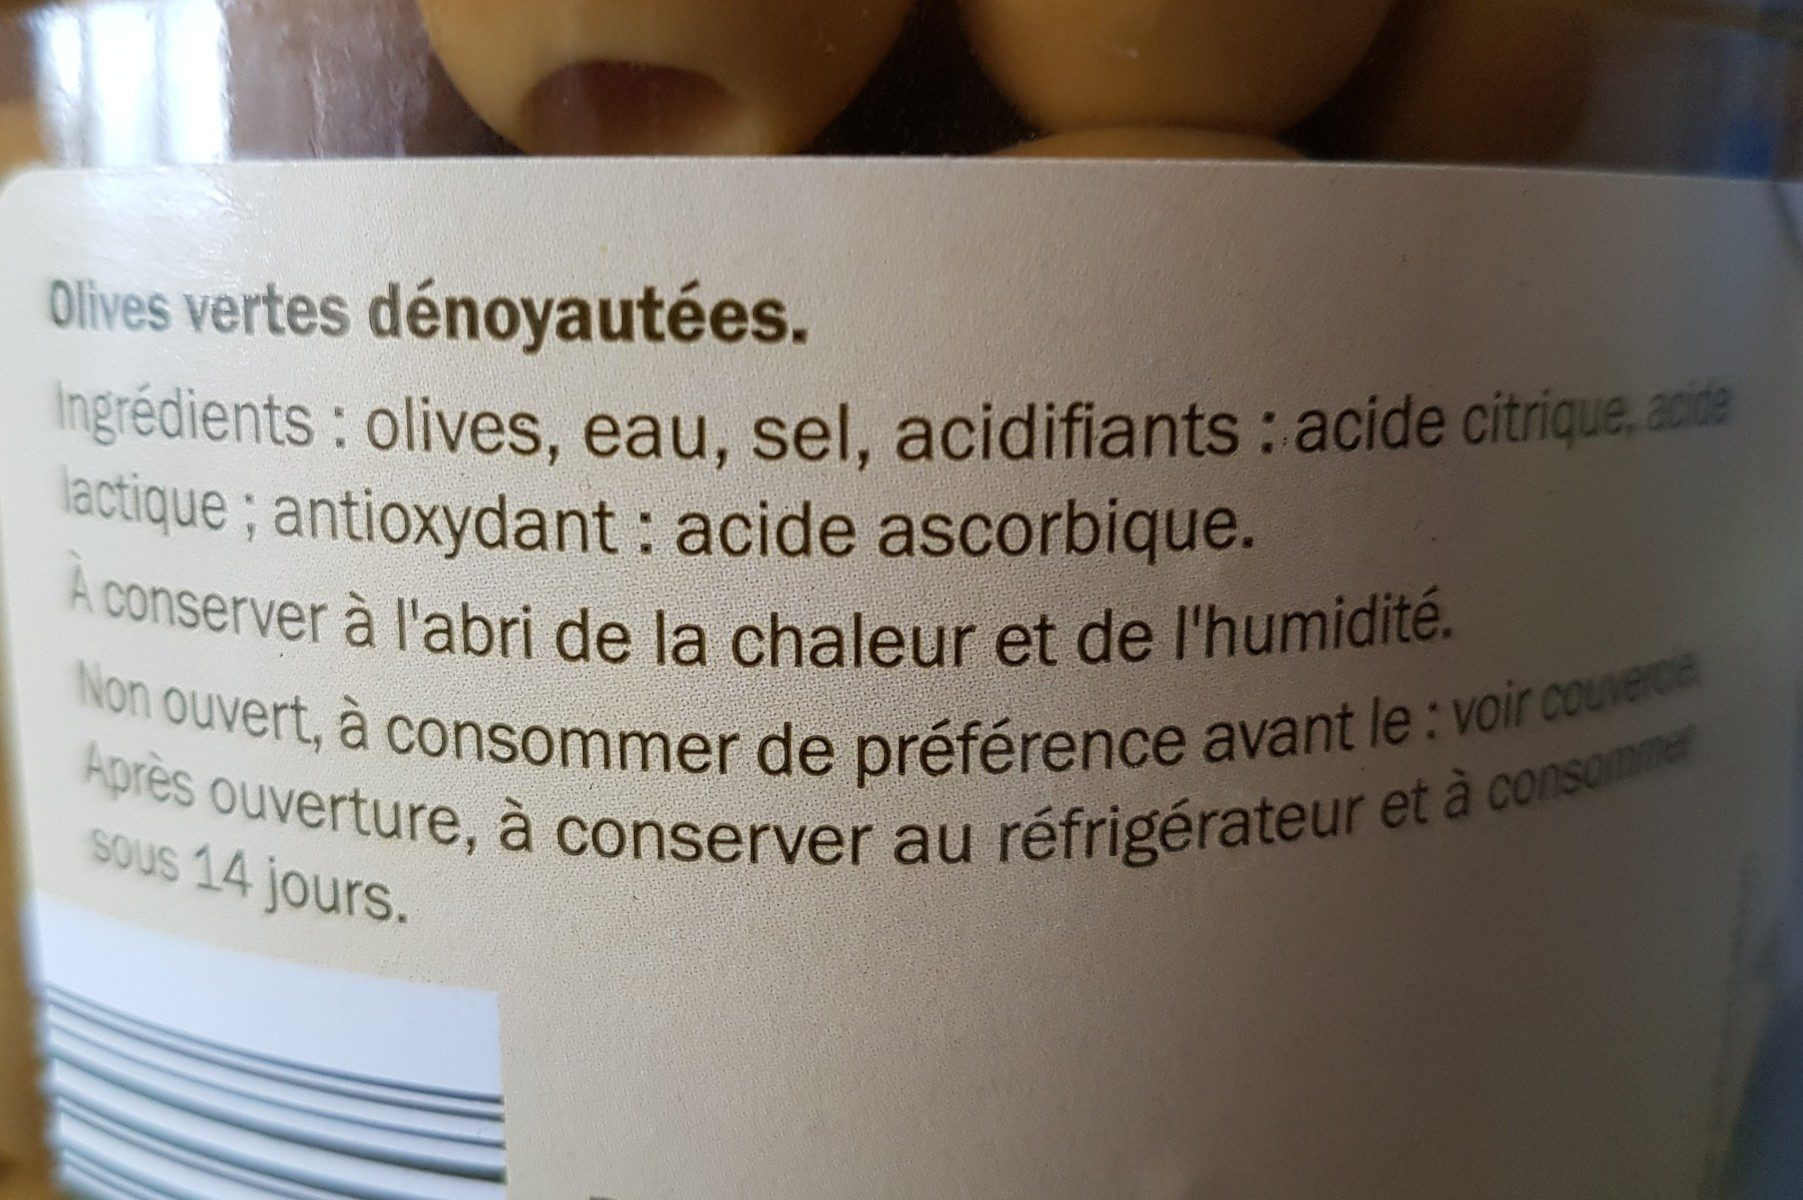 Olives vertes dénoyautées - Ingredients